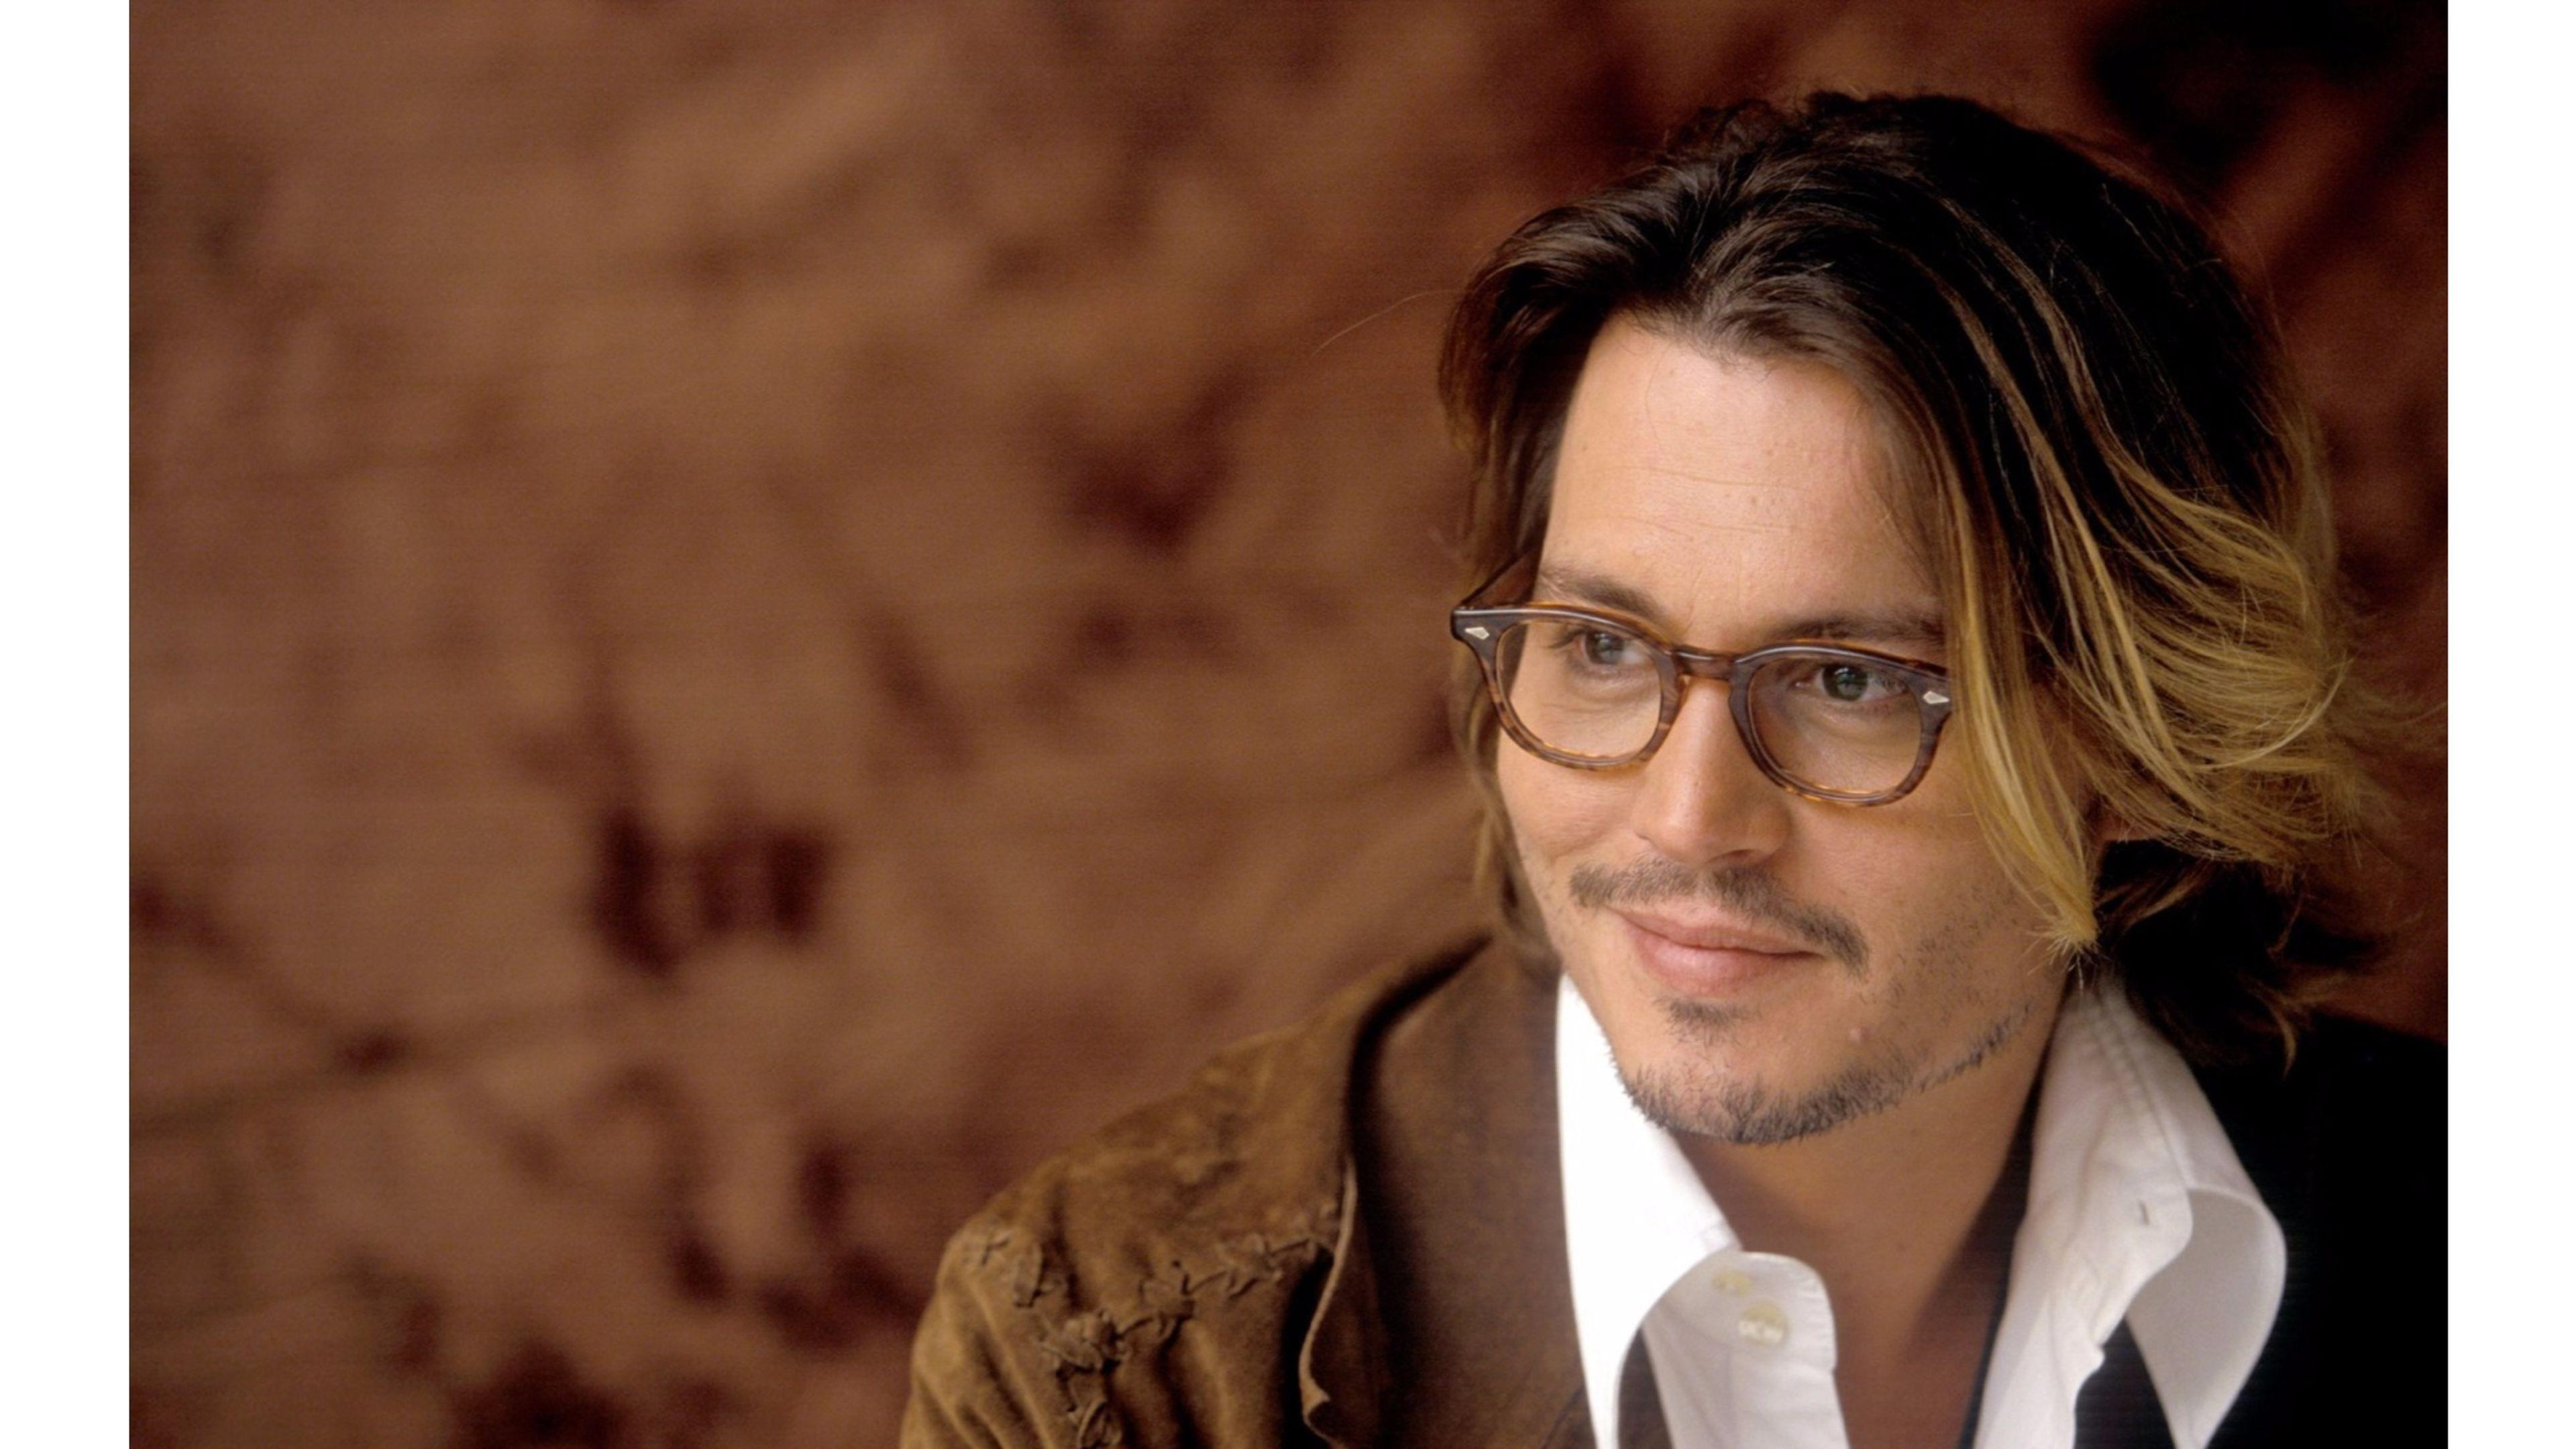 Young Johnny Depp Wallpaper Background And Wallpapers Full HD ...